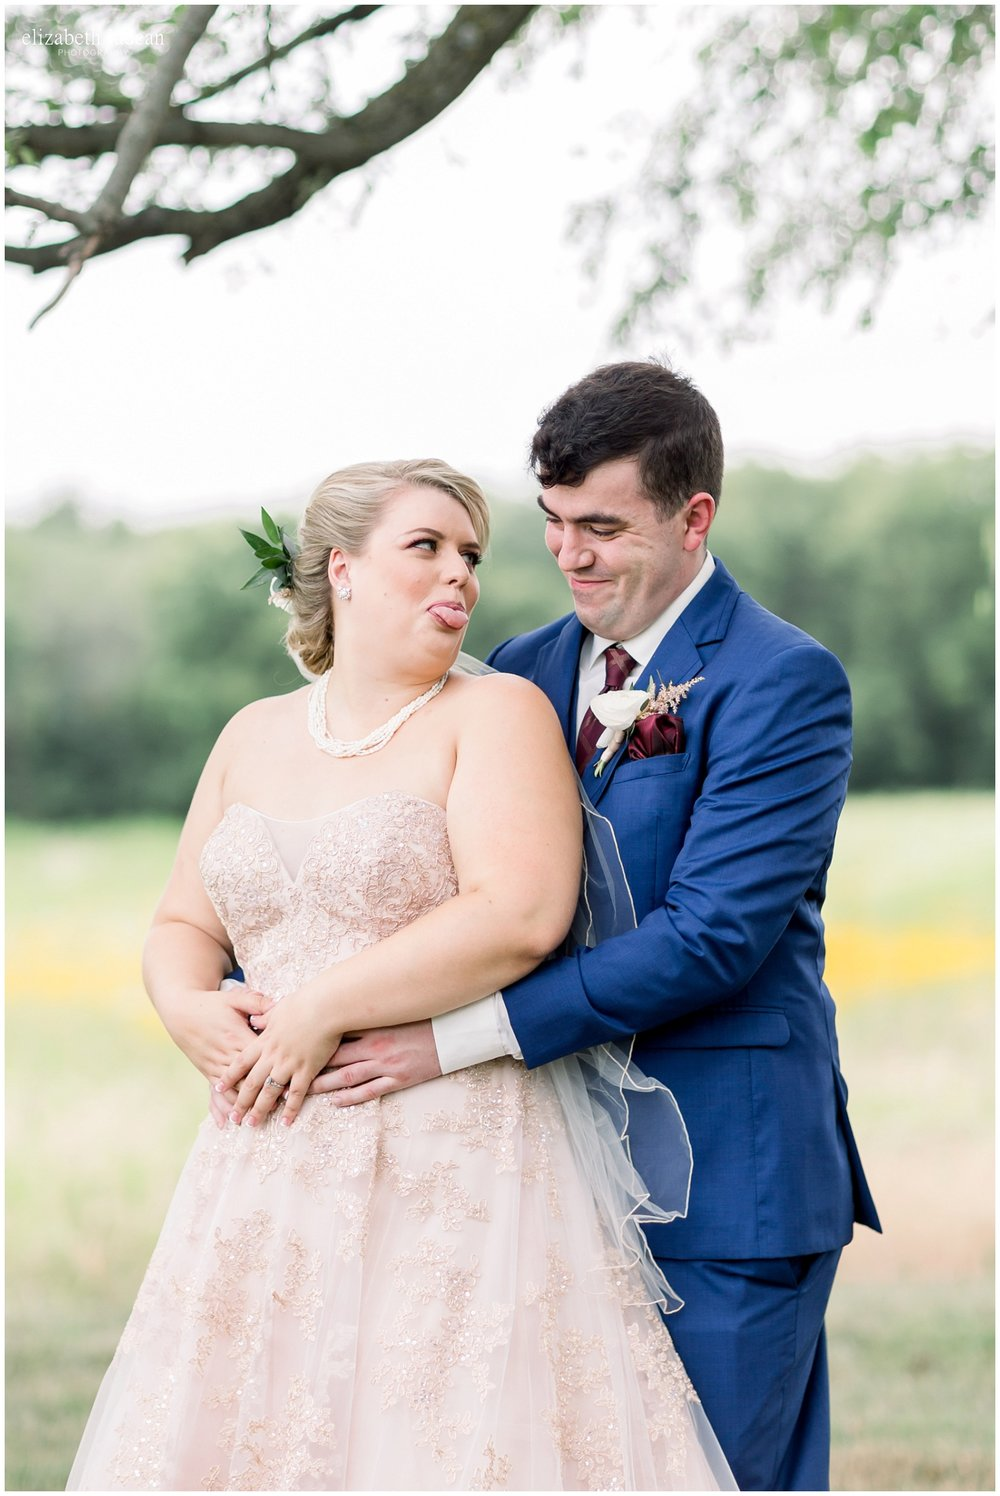 -behind-the-scenes-of-a-wedding-photographer-2018-elizabeth-ladean-photography-photo_3478.jpg